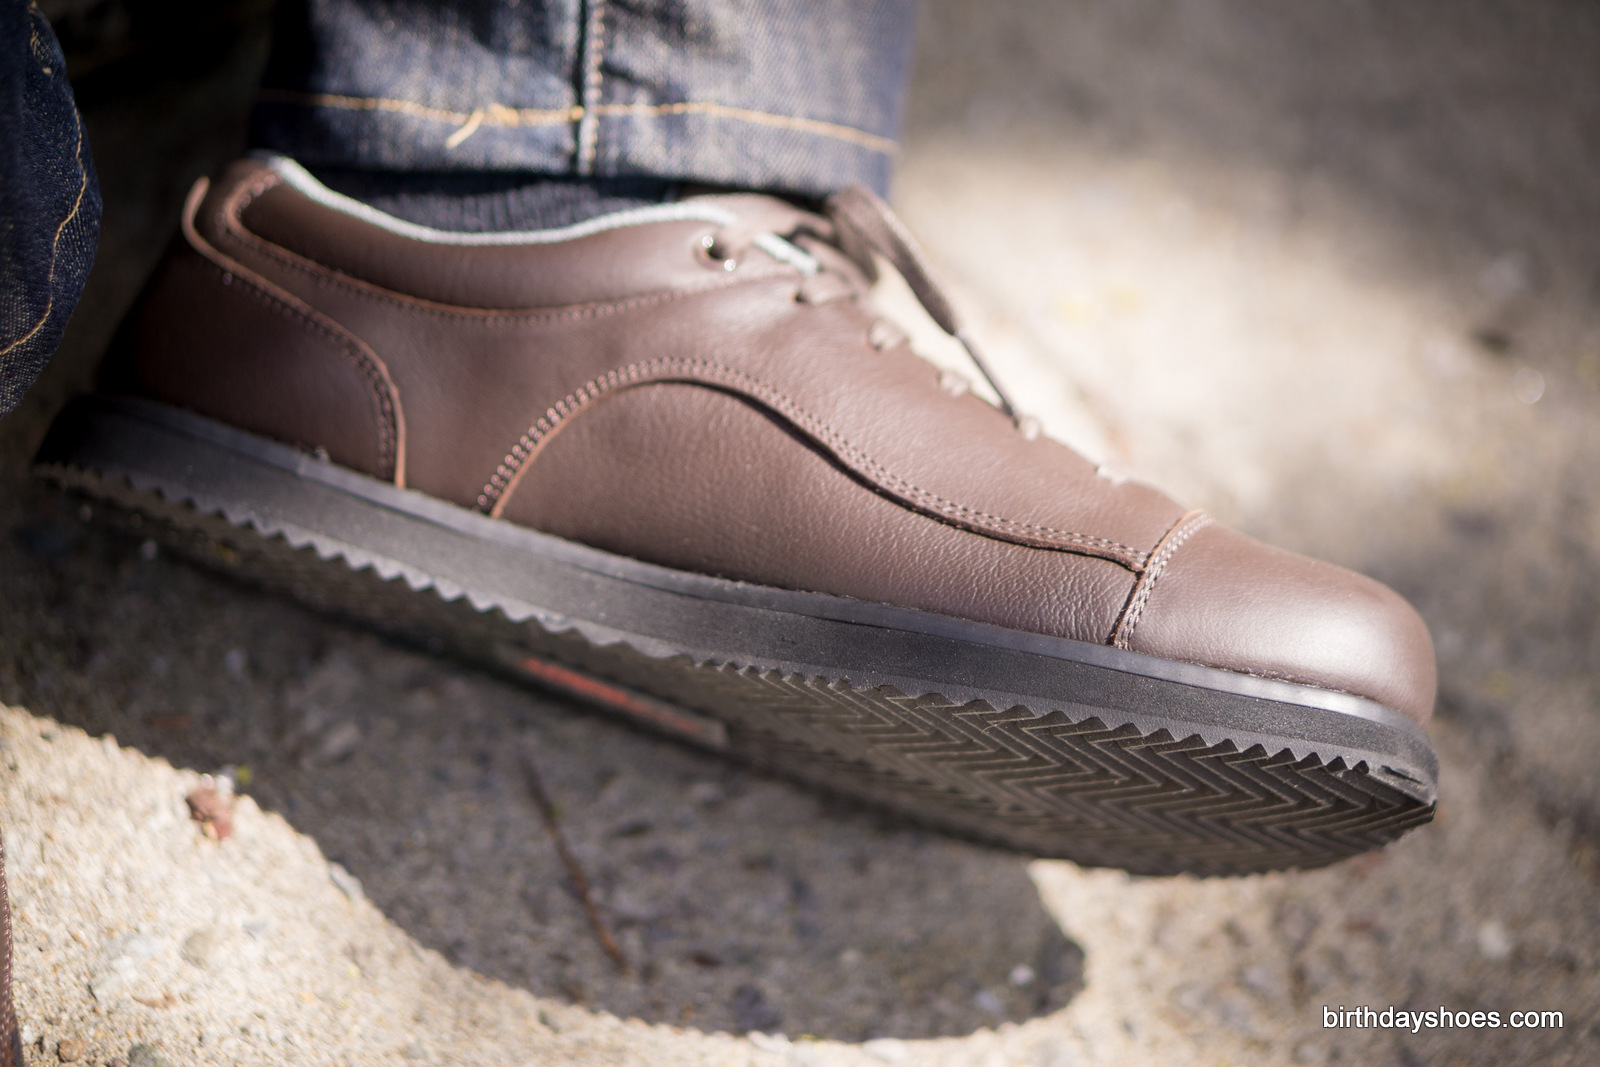 With a zero drop platform, your heels will thank you and be more durable